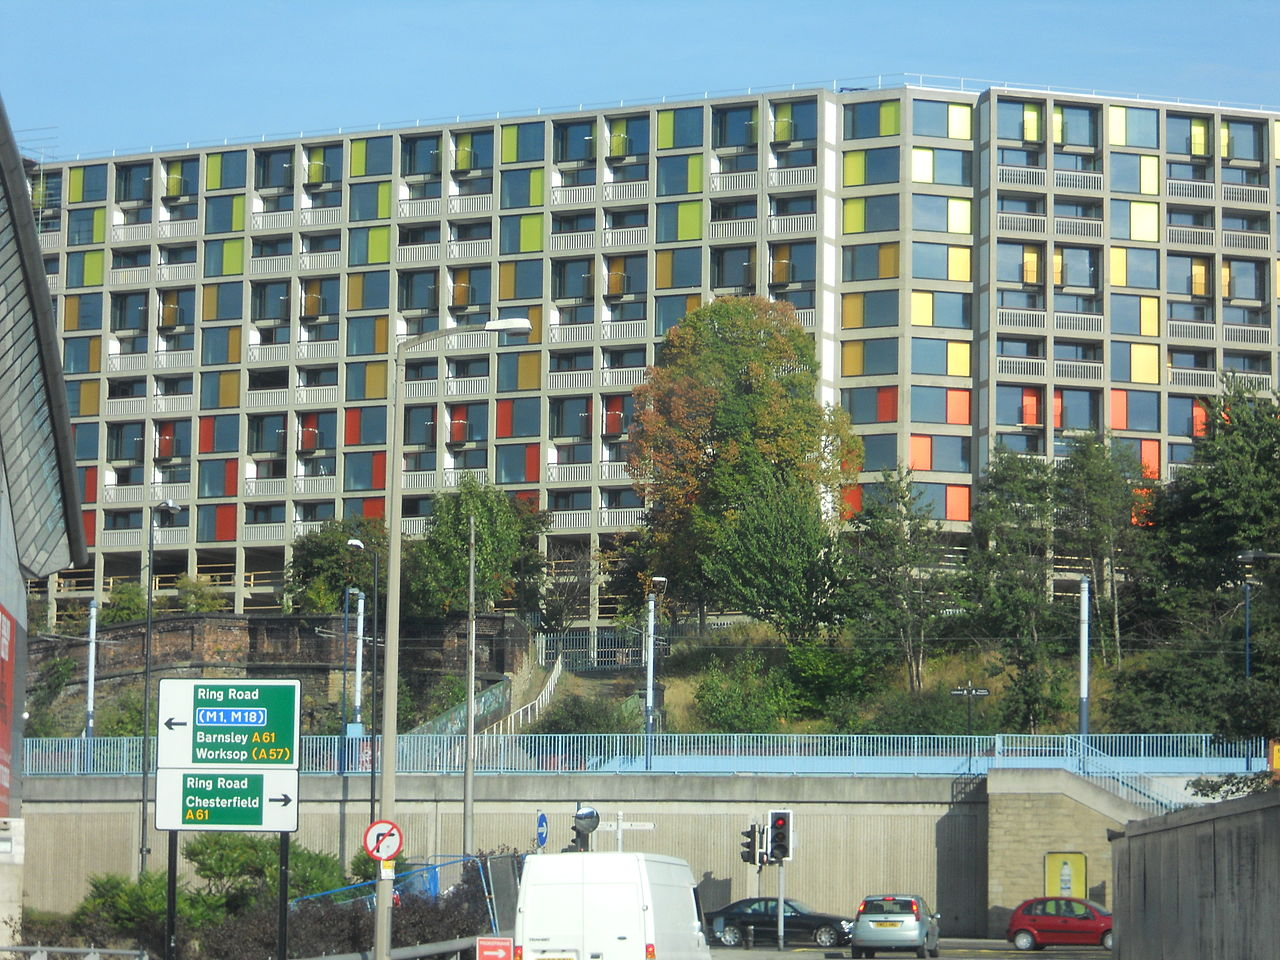 10 Iconic Buildings that define the skyline of Sheffield - Park Hill